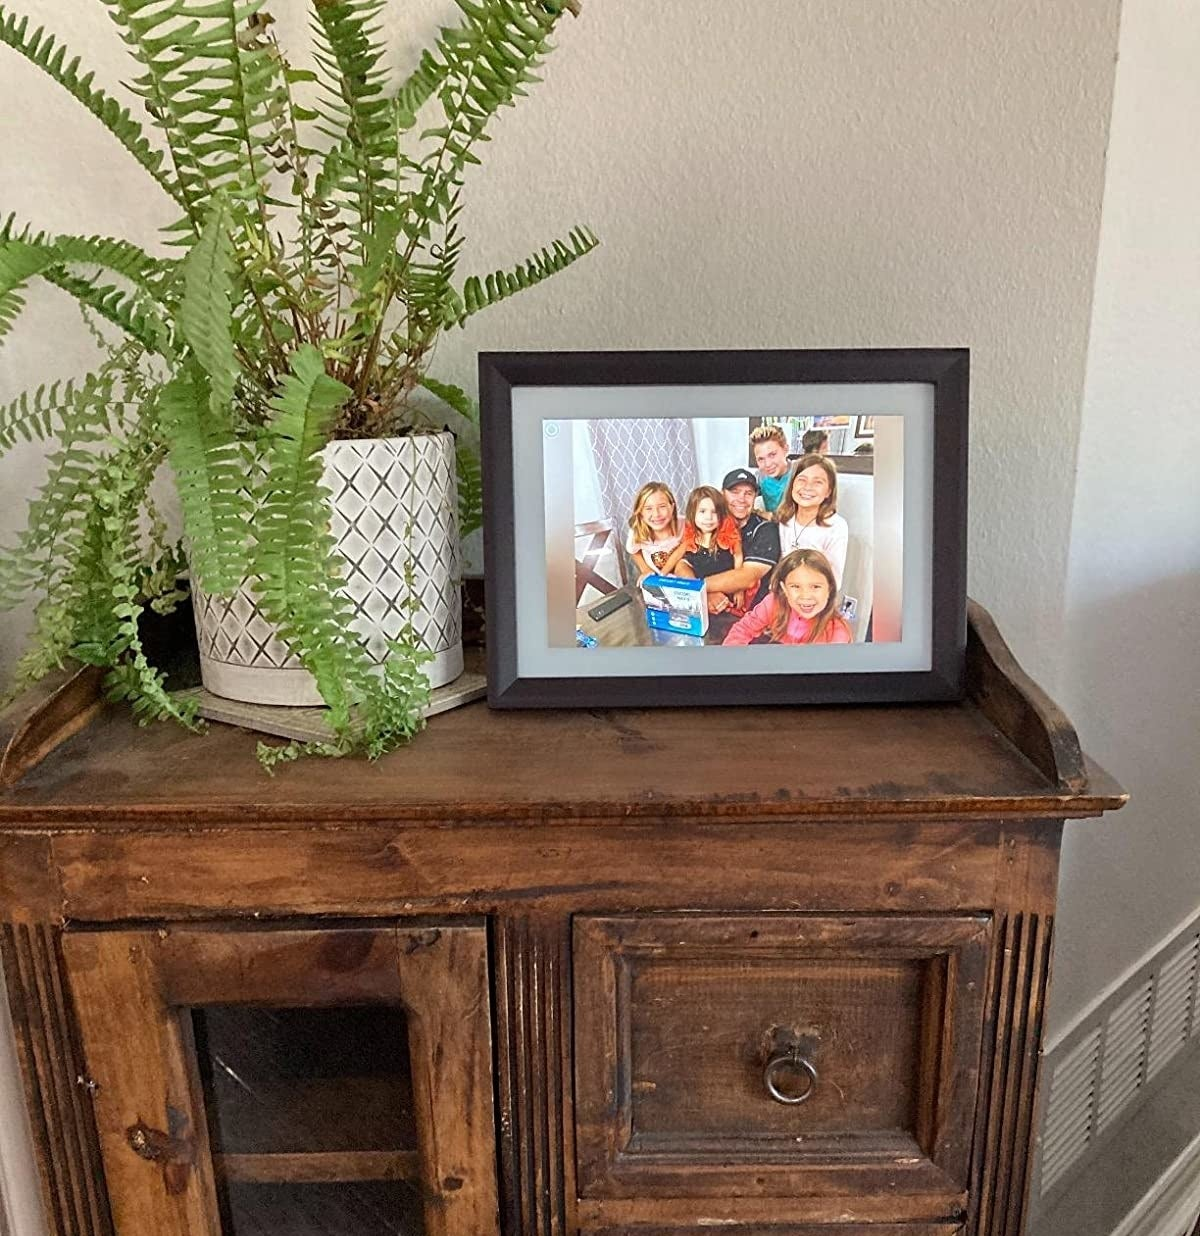 the digital picture frame